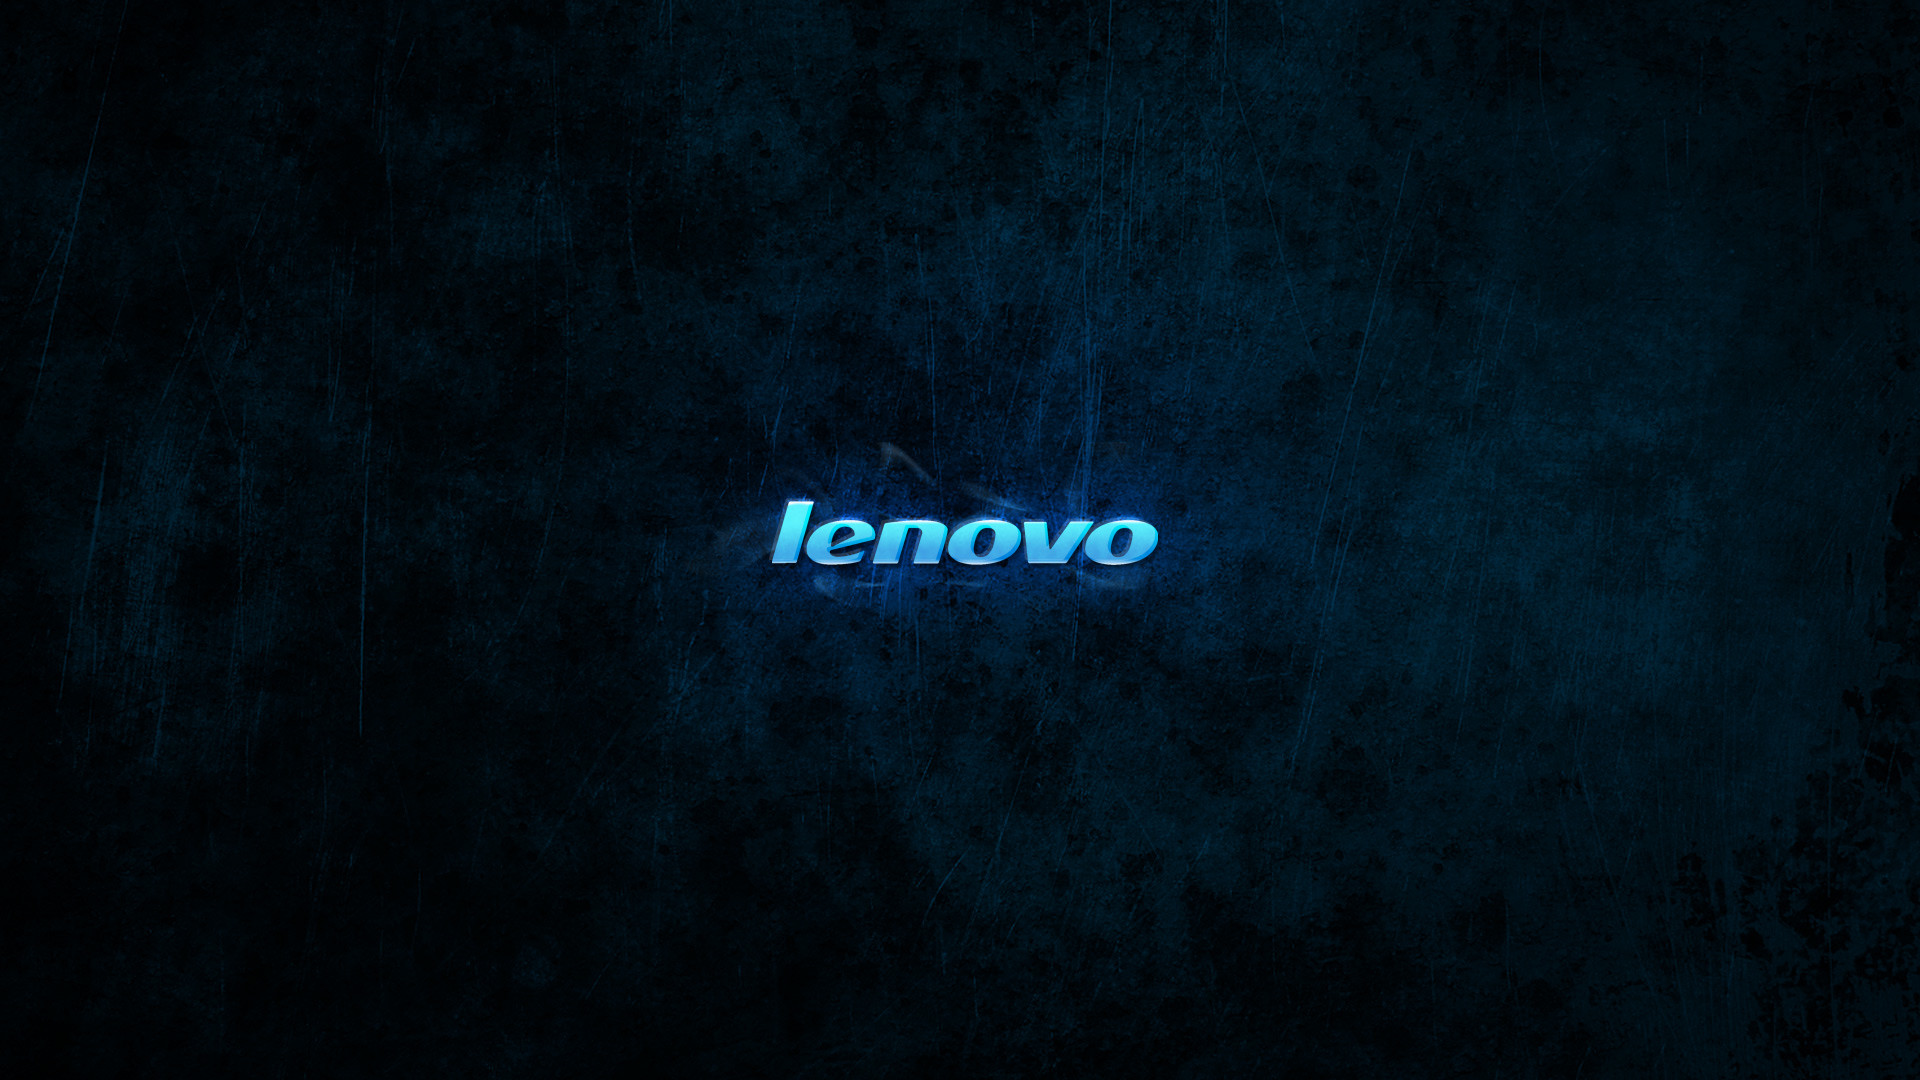 Lenovo windows 10 wallpaper 69 images 1920x1080 download lenovo windows 8 wallpapers pictures in high definition or voltagebd Image collections